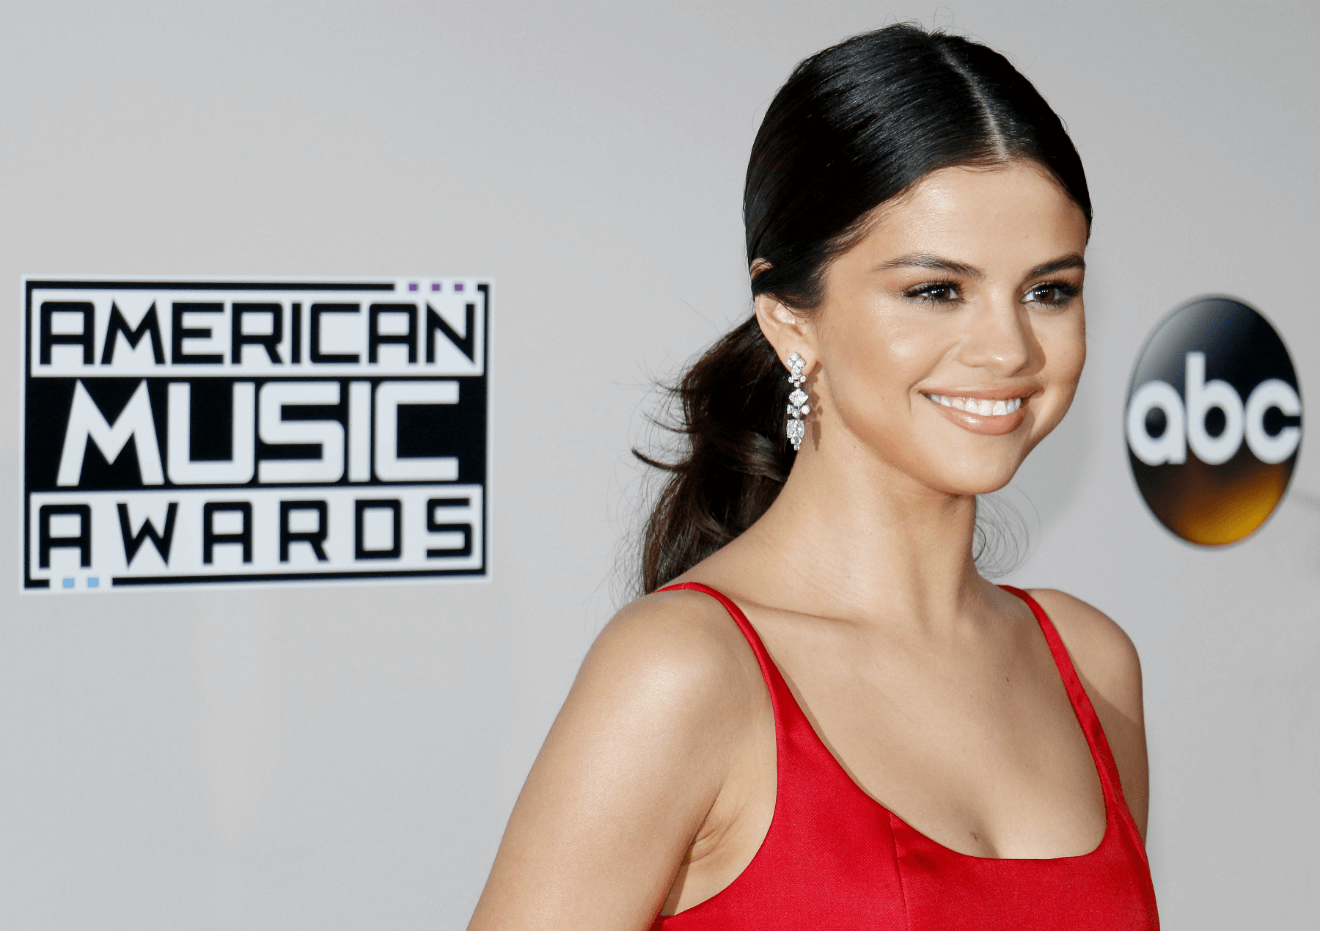 selina gomez american music awards abc photo